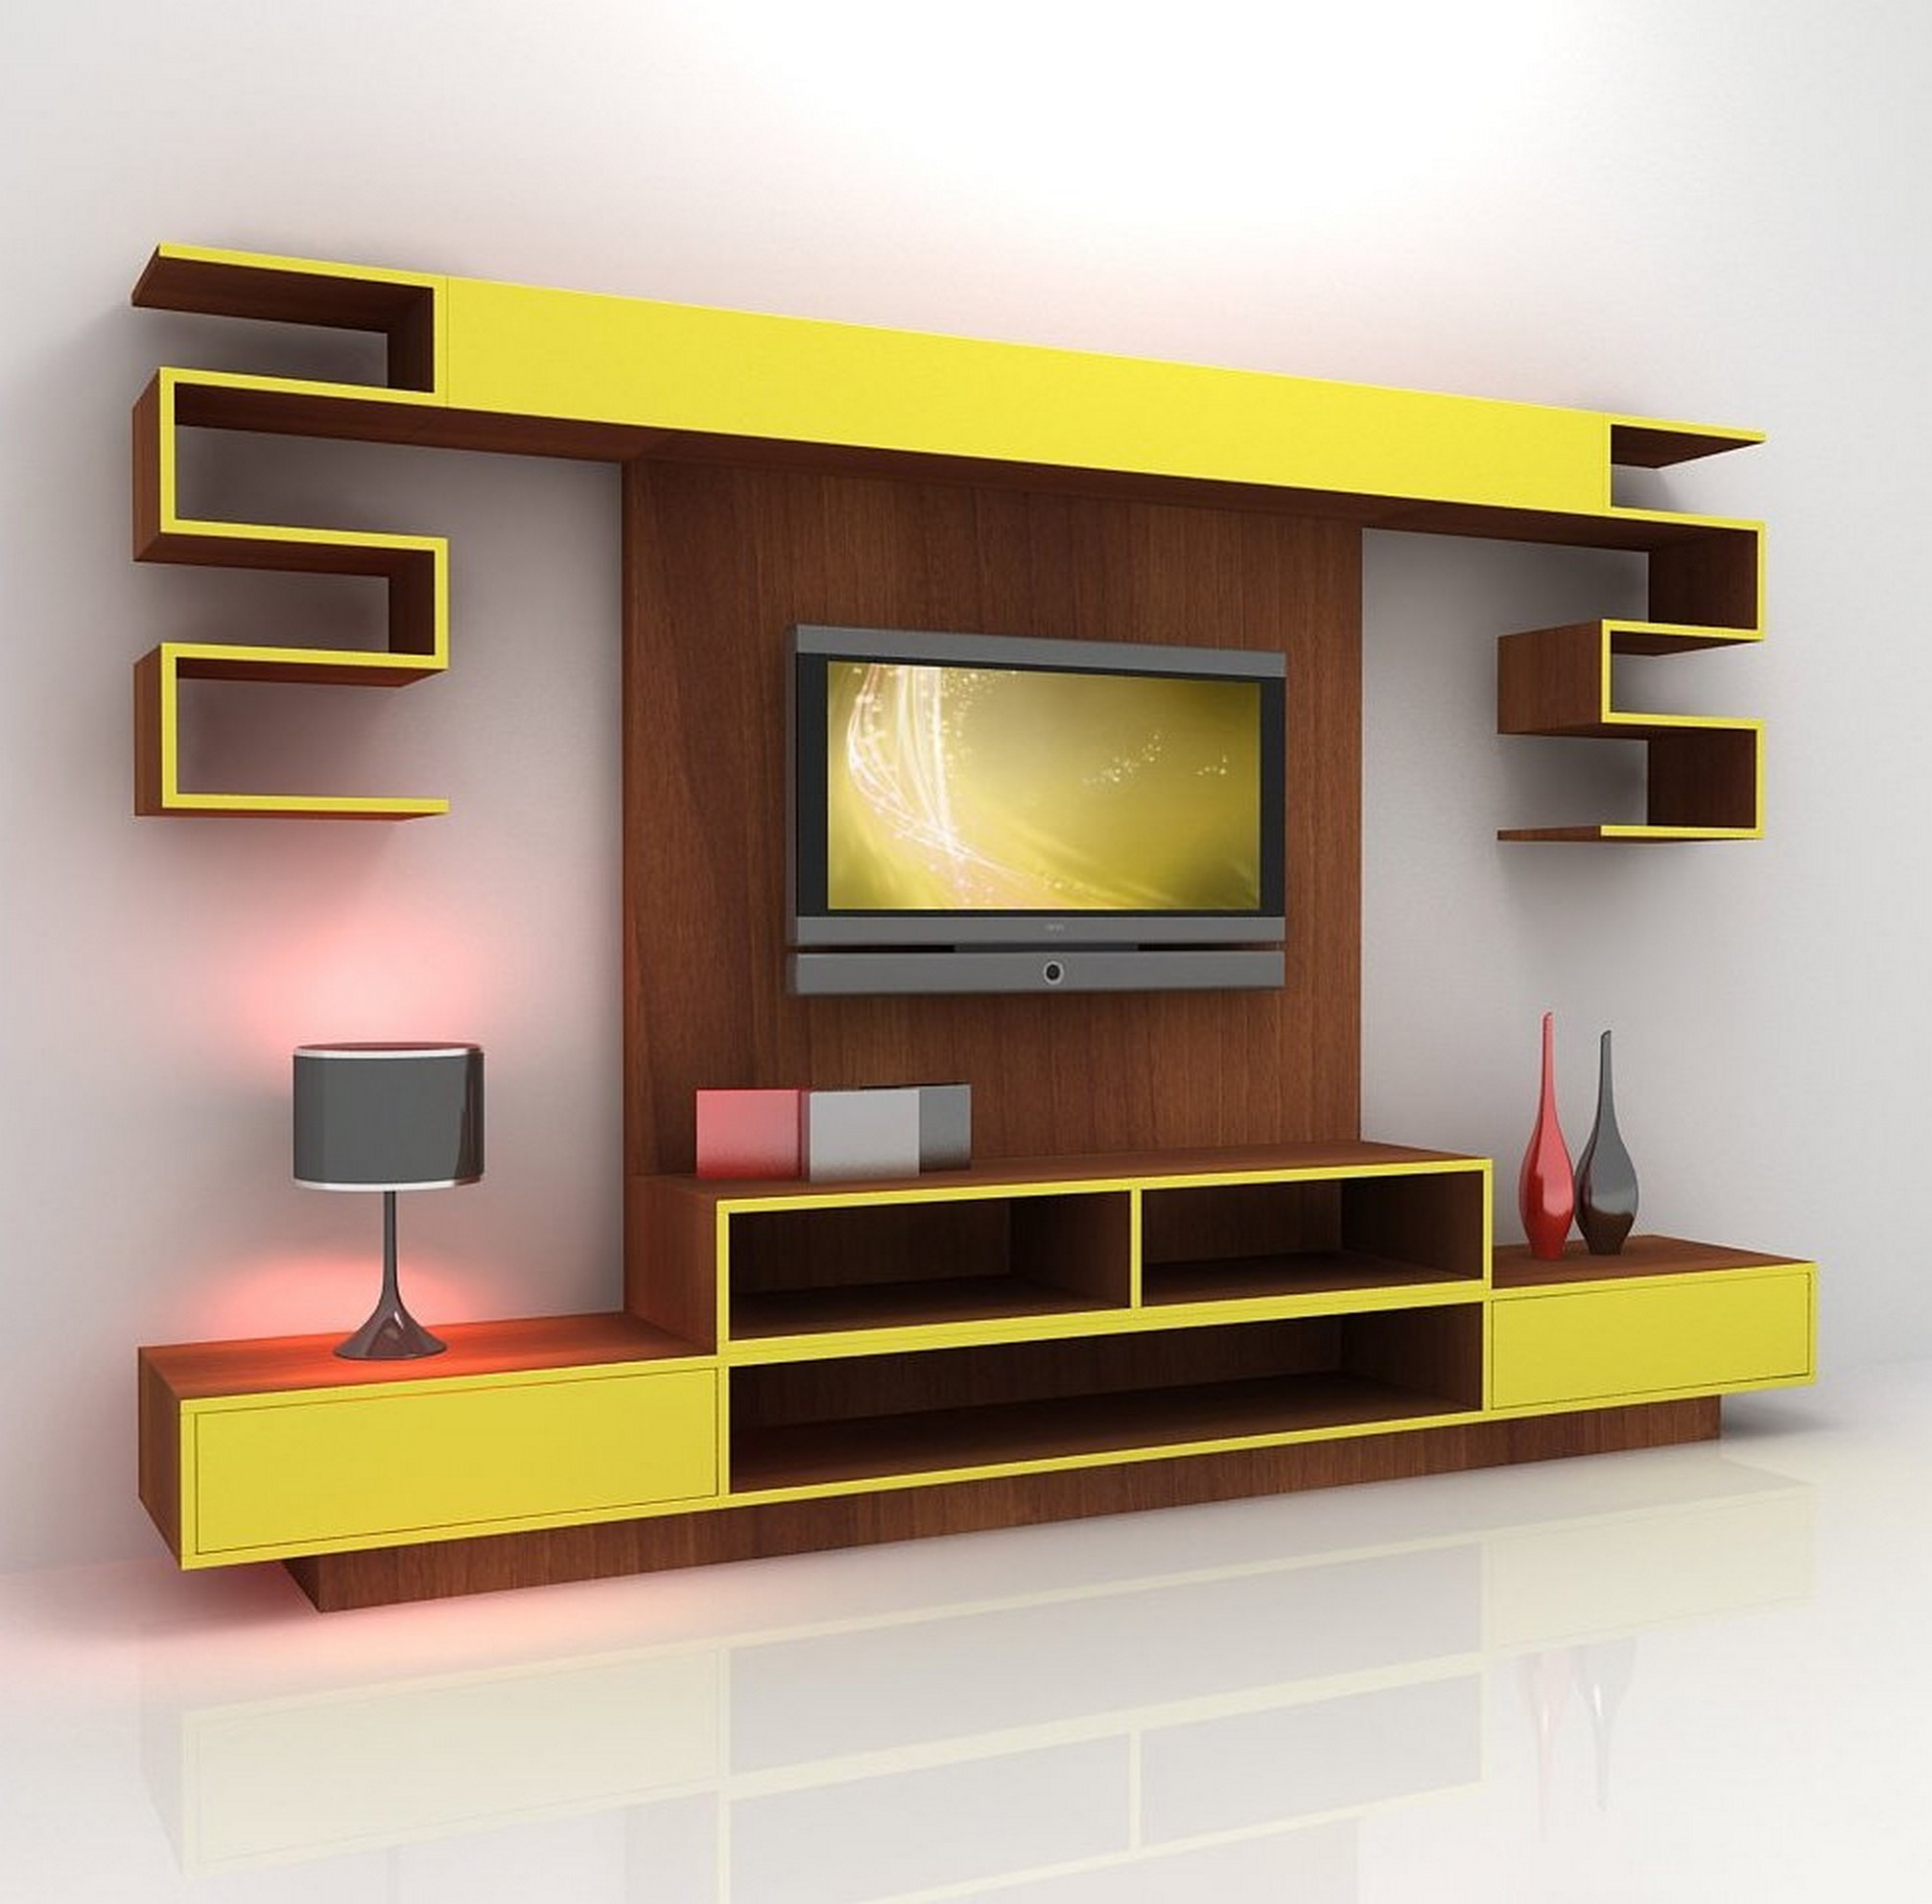 Mounted TV Ideas How to Decorate Them Beautifully